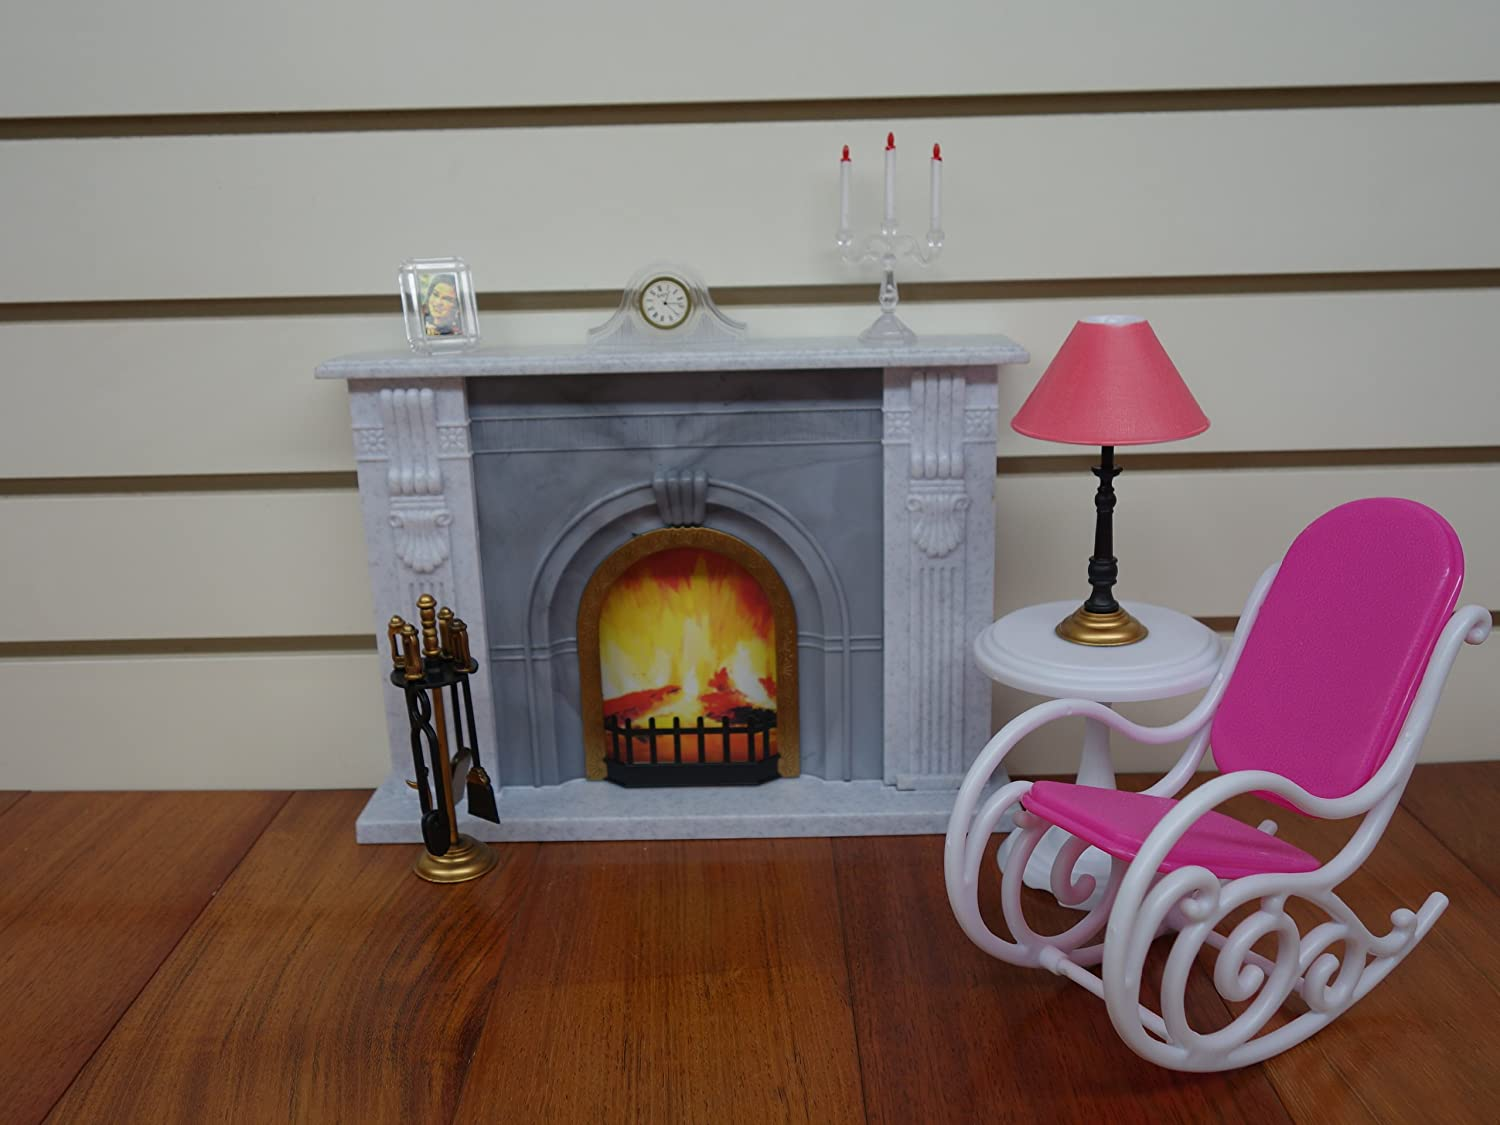 96006 GLORIA DOLLHOUSE BARBIE FURNITURE Size FIREPLACE Set W Chair /& Table